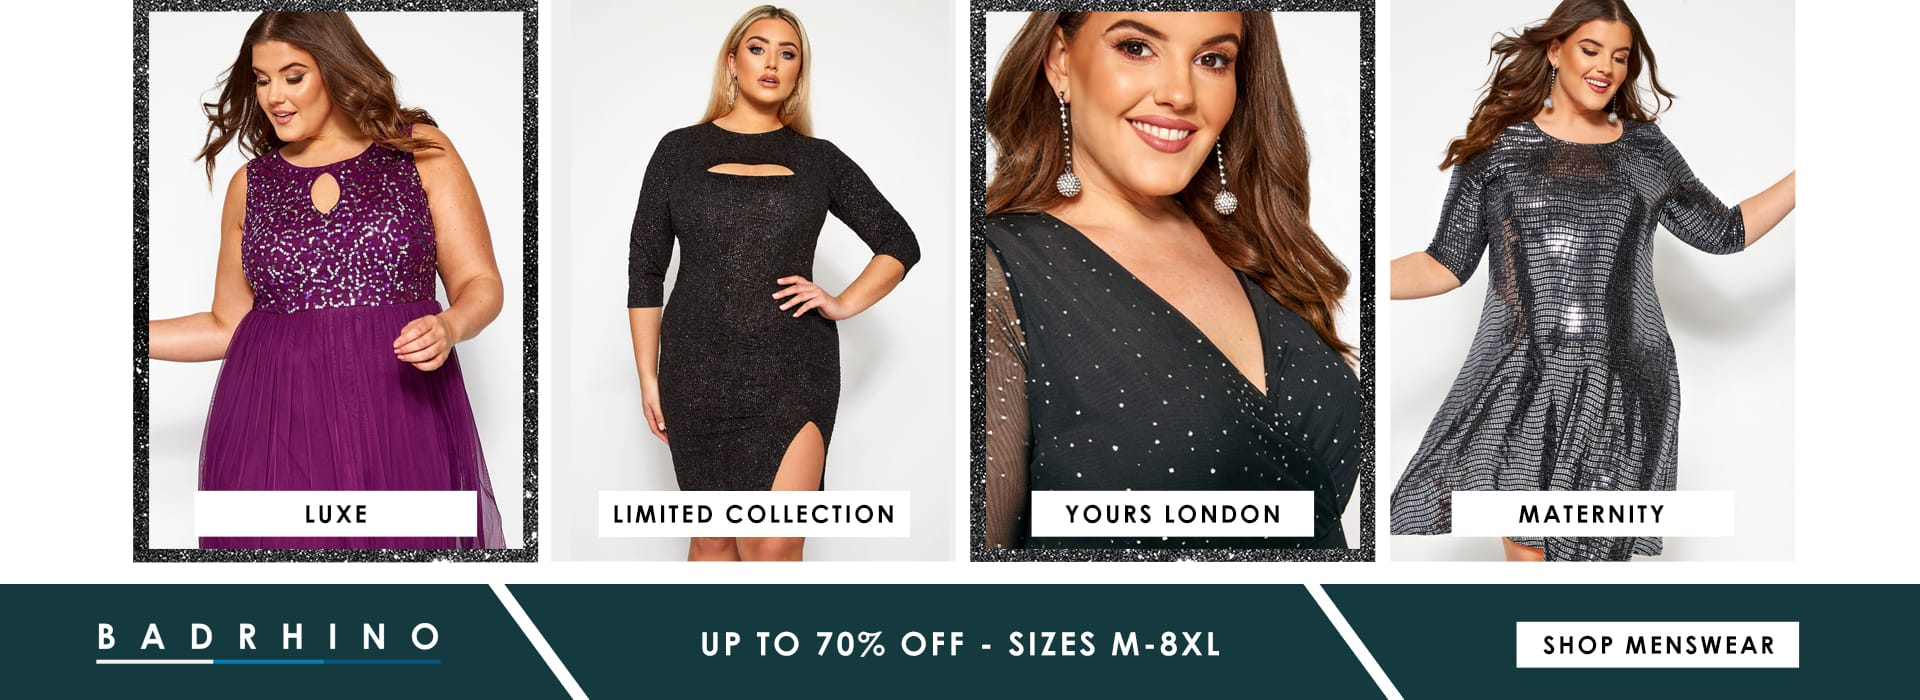 Luxe - Limited - Yours London - Maternity